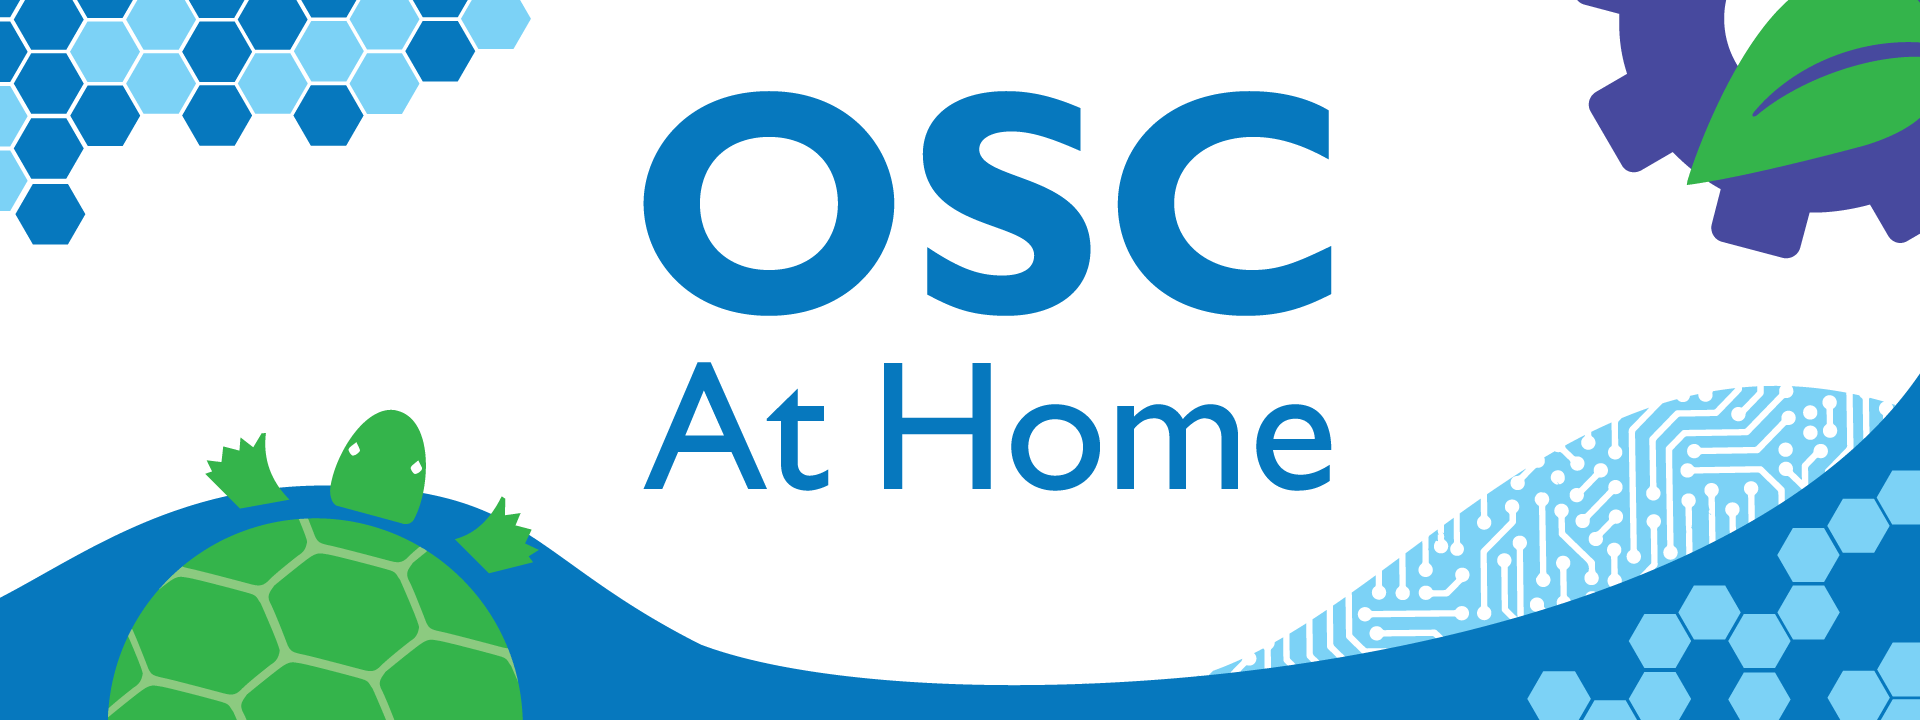 OSC At Home - illustration of turtle and hexagons